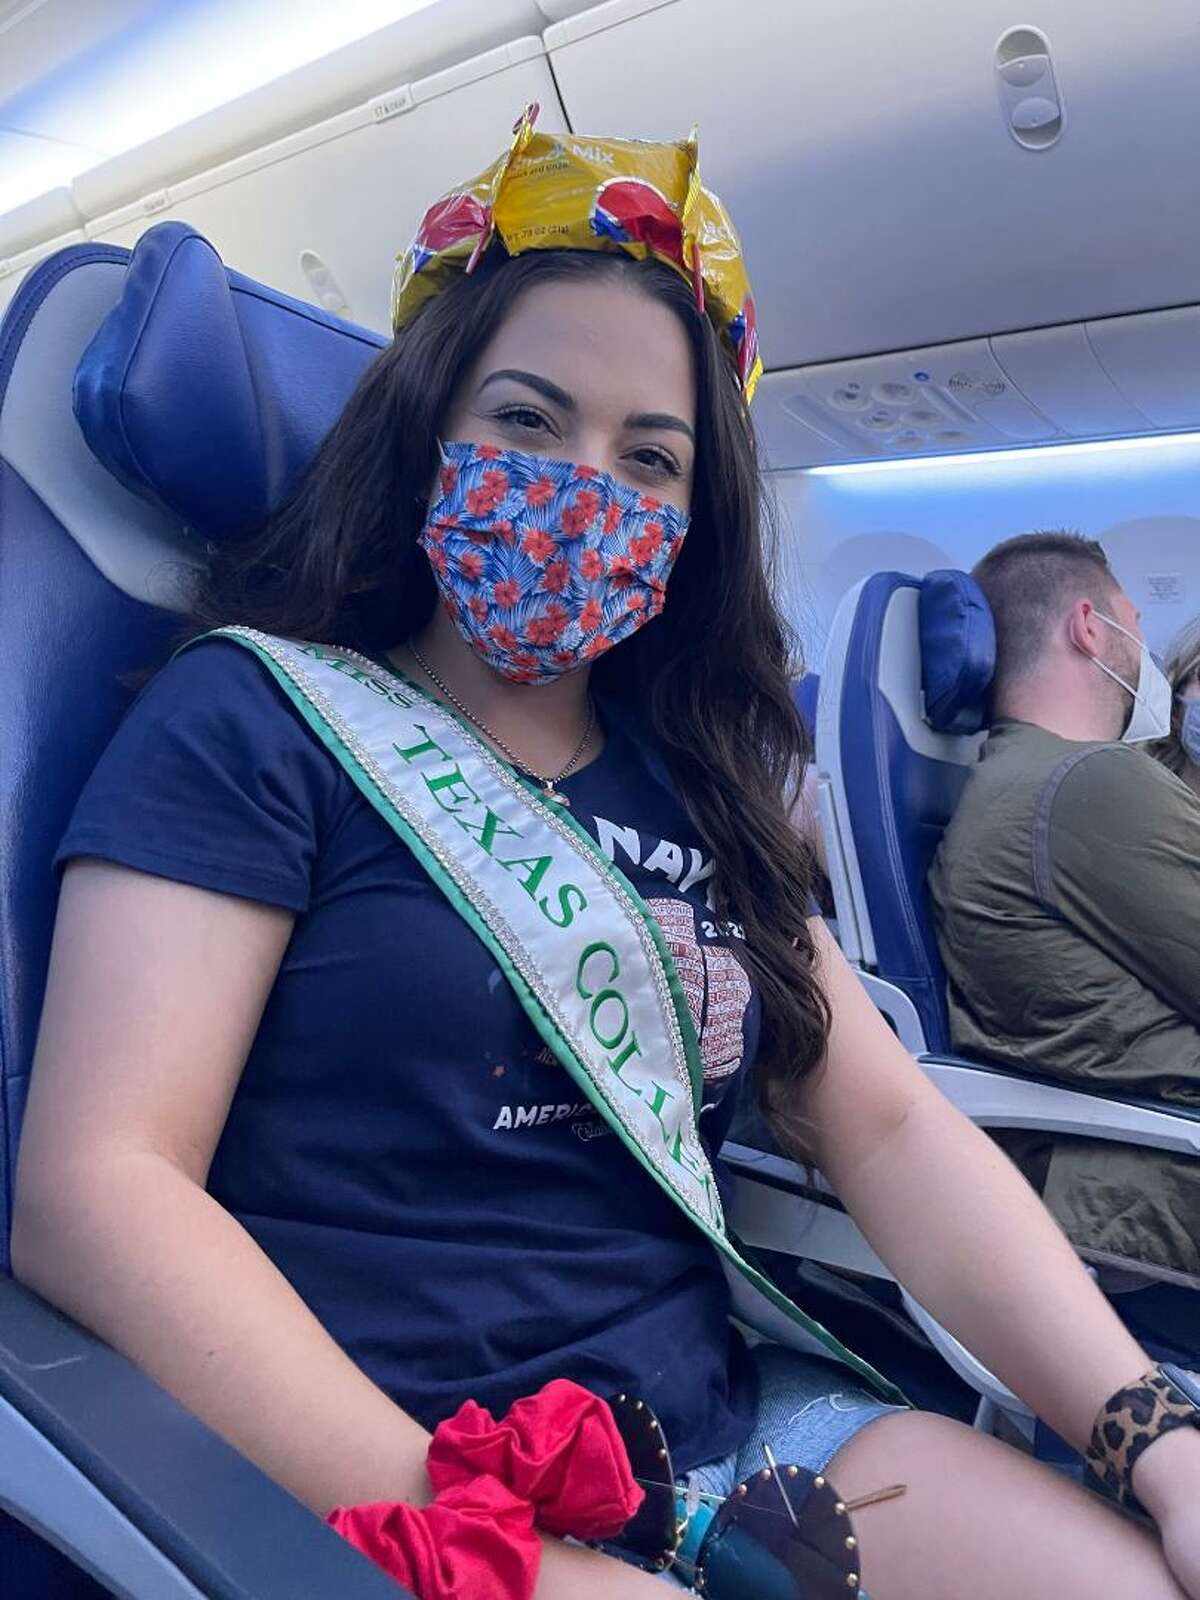 Jessica Hall of Alvin received a unique crown when Southwest Airlines flight attendants noticed that she was traveling to a national pageant with a Miss Texas Collegiate crown and sash tucked beneath her seat. The attendants fashioned an impromptu crown of their own for Hall.